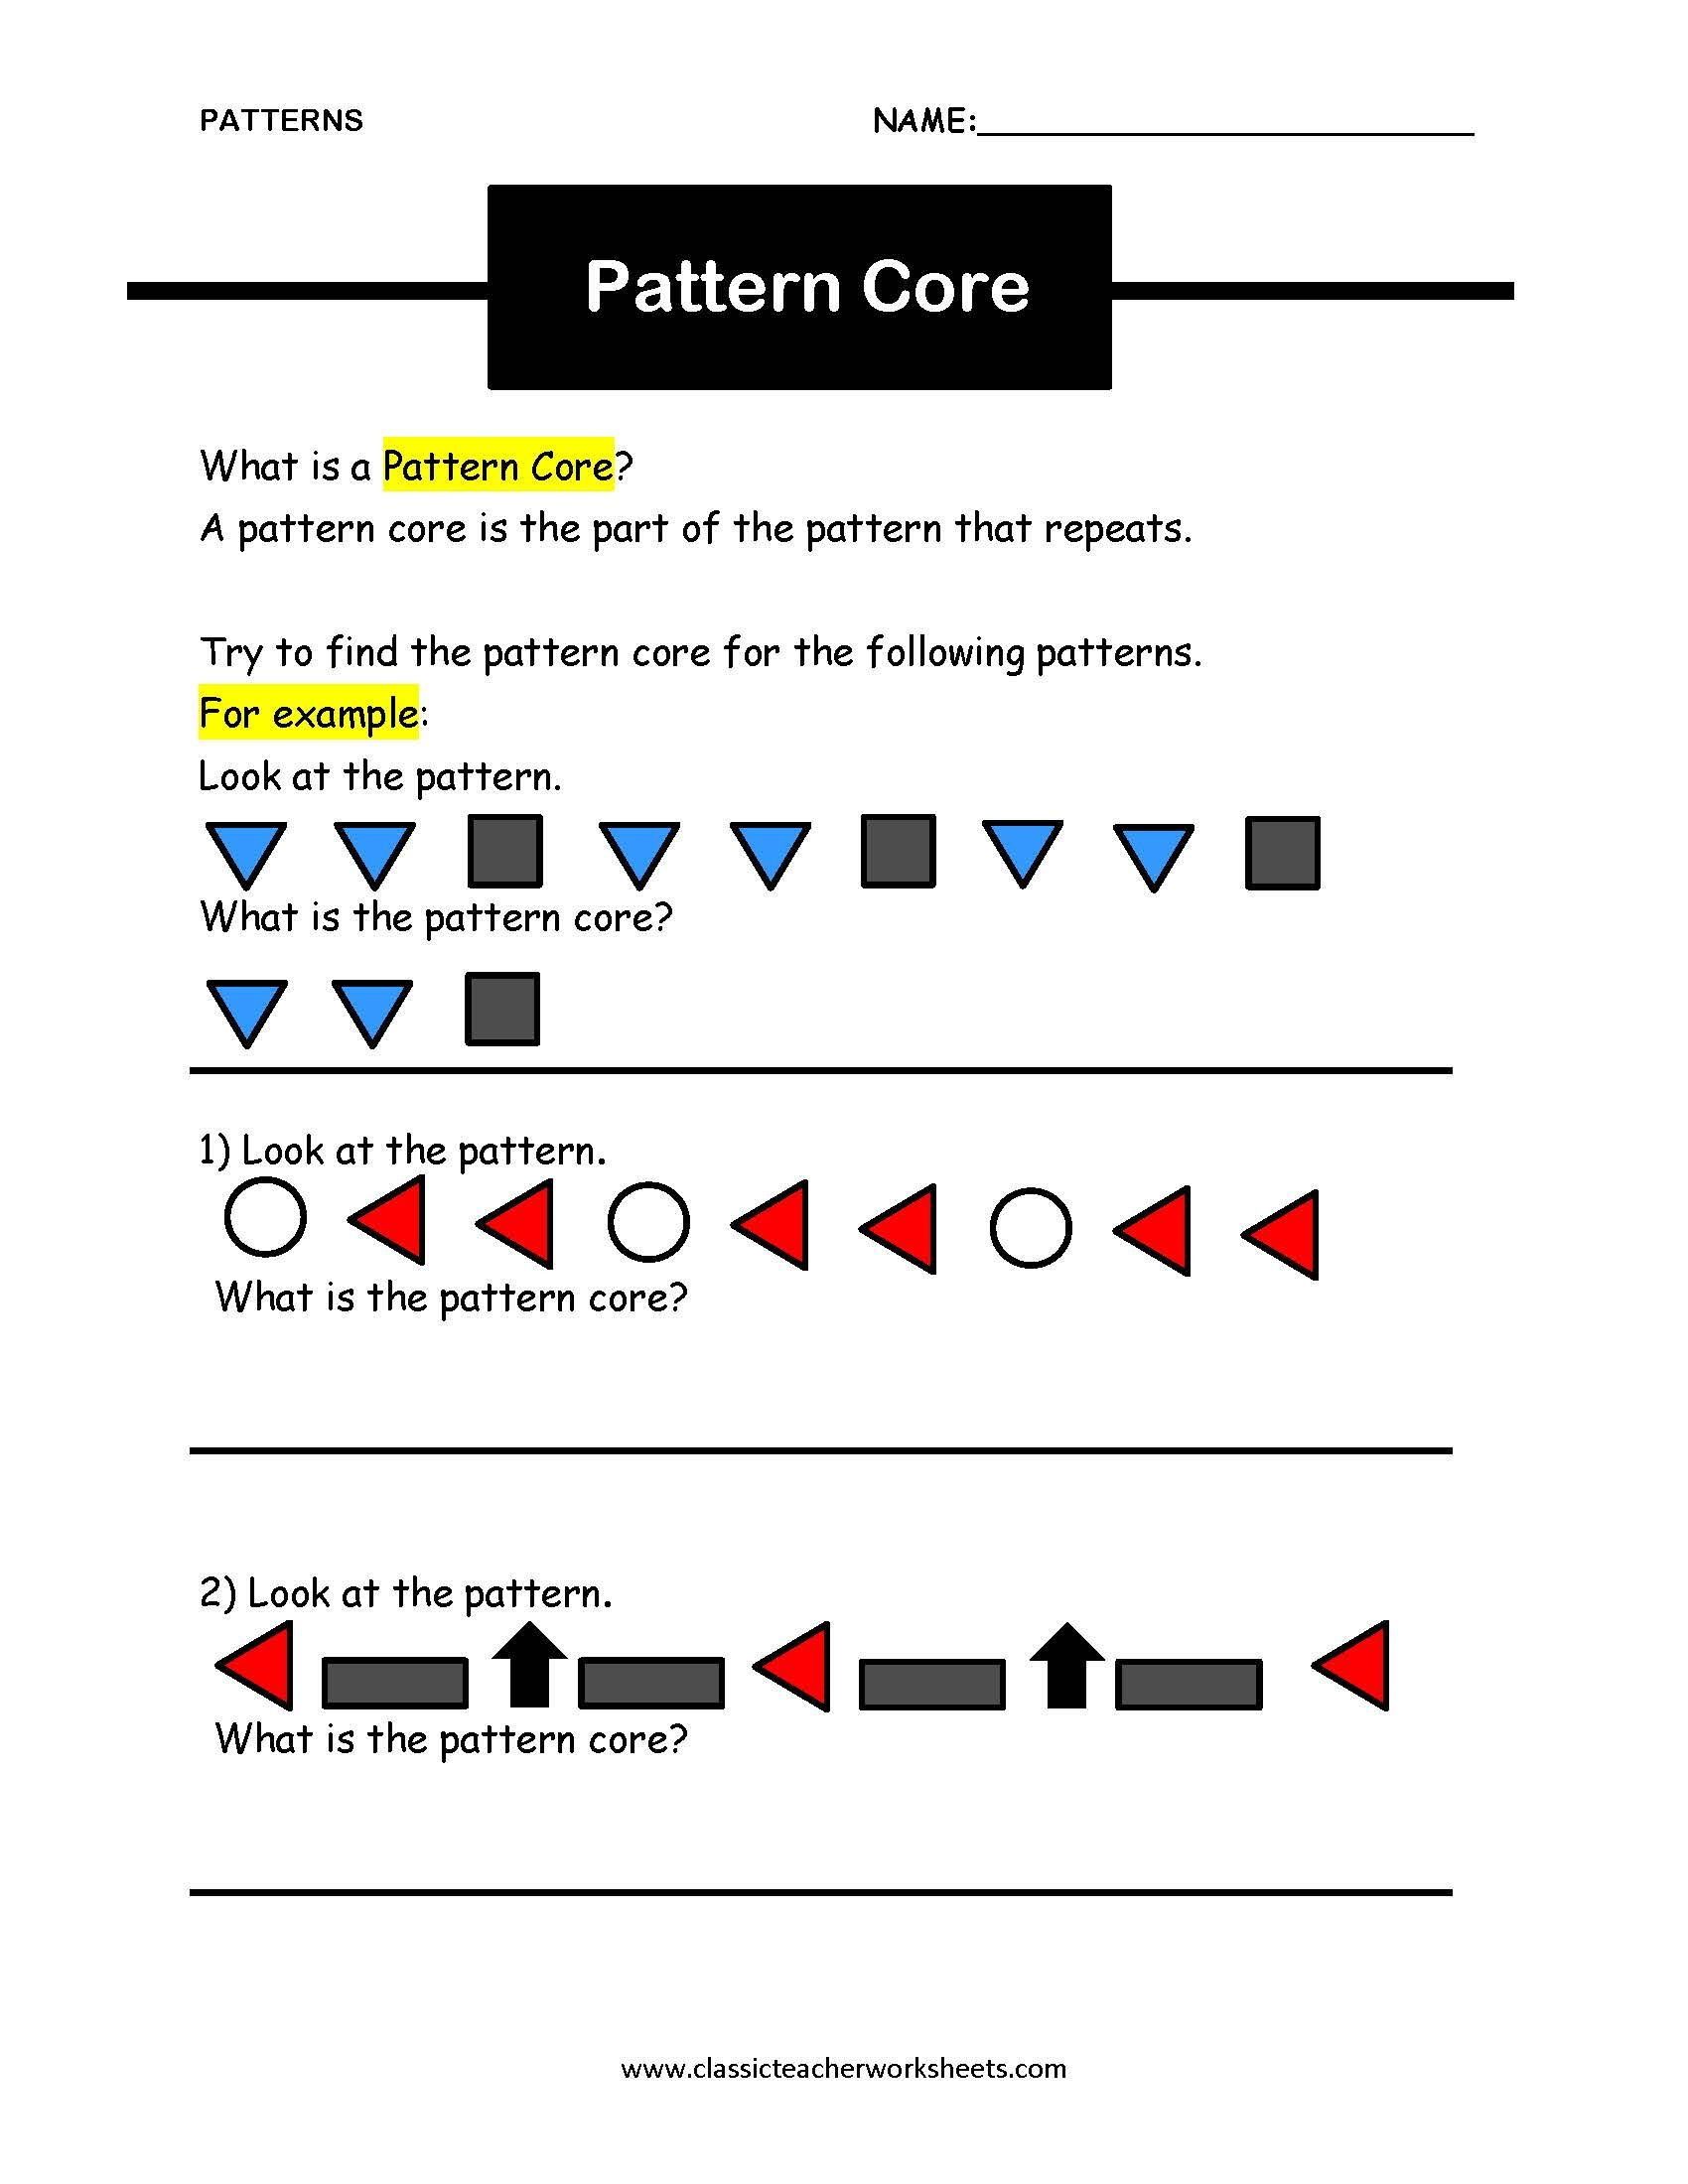 Uncategorized Finding Patterns In Math Worksheets check out our collection of math worksheets at classicteacherworksheets com worksheet patterns